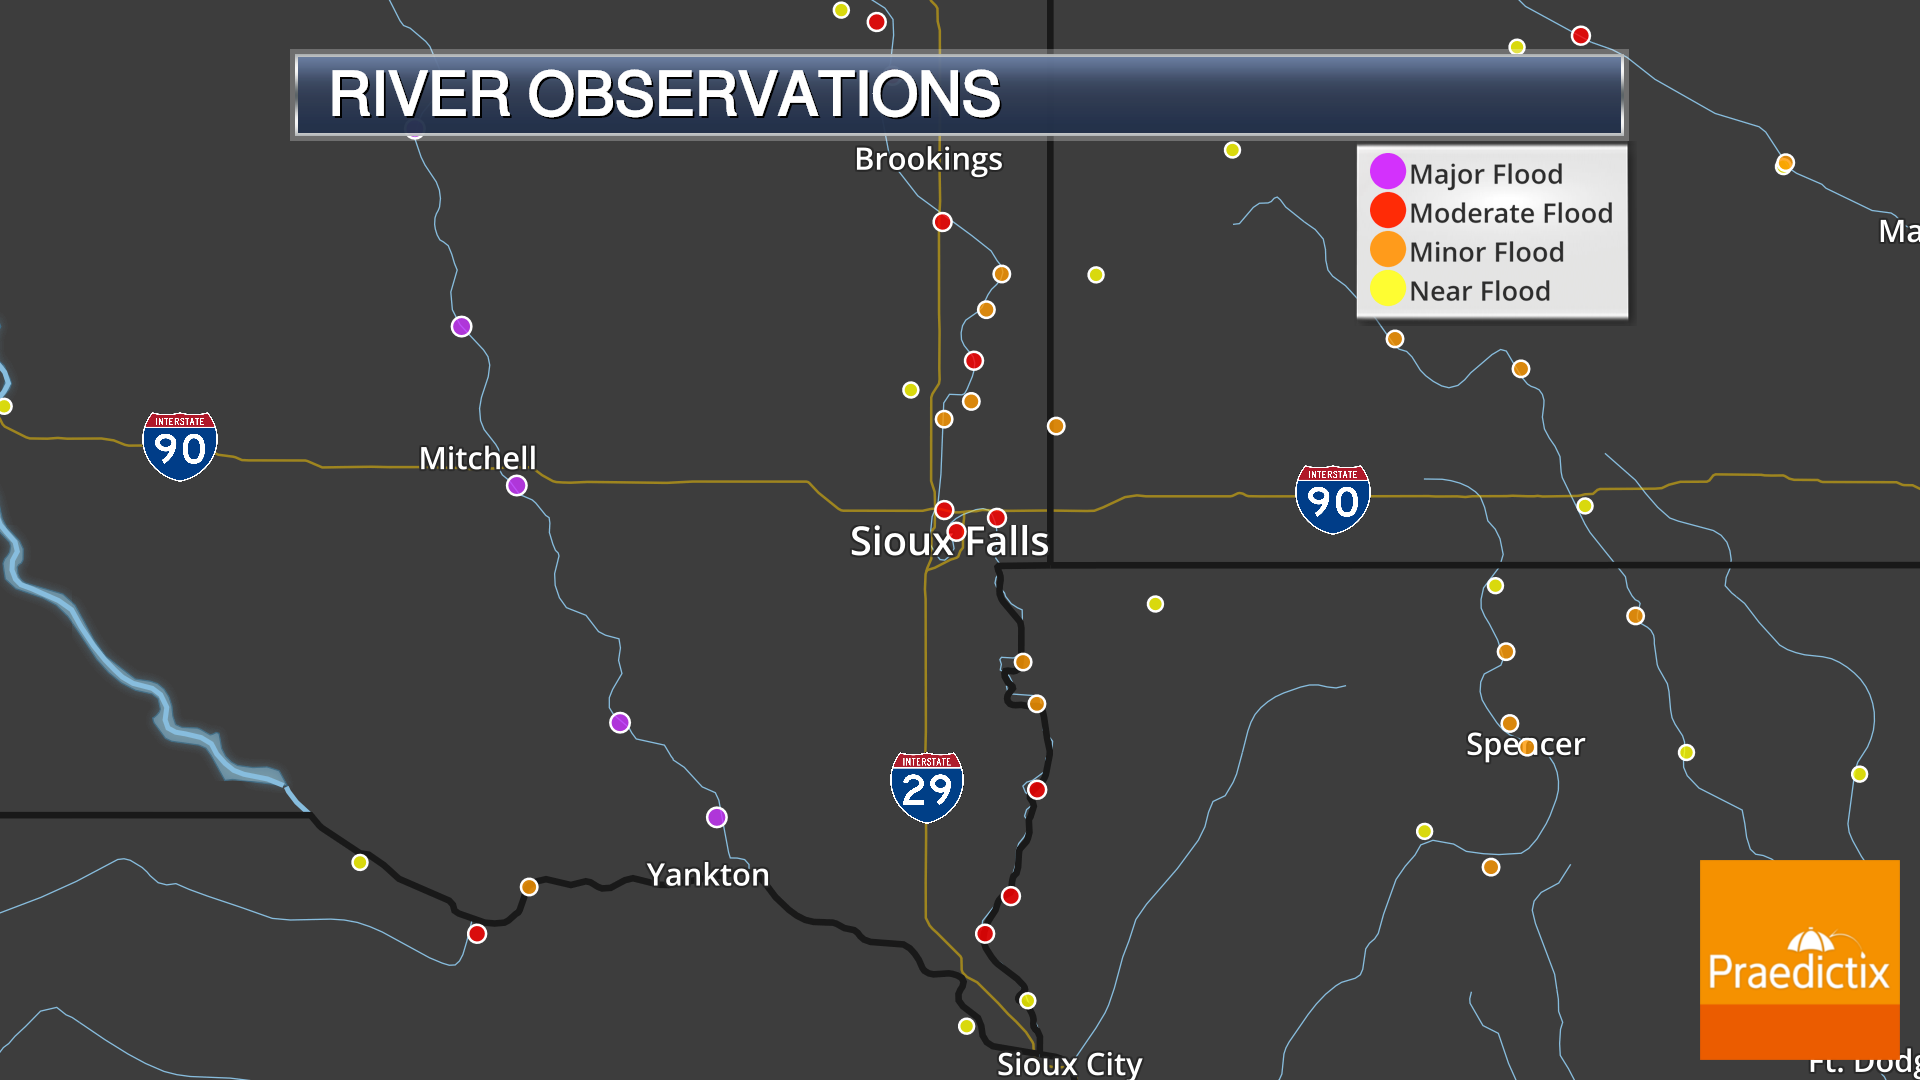 Flood weather graphic of river observations at flood stage in Sioux Falls, South Dakota in May 2019.